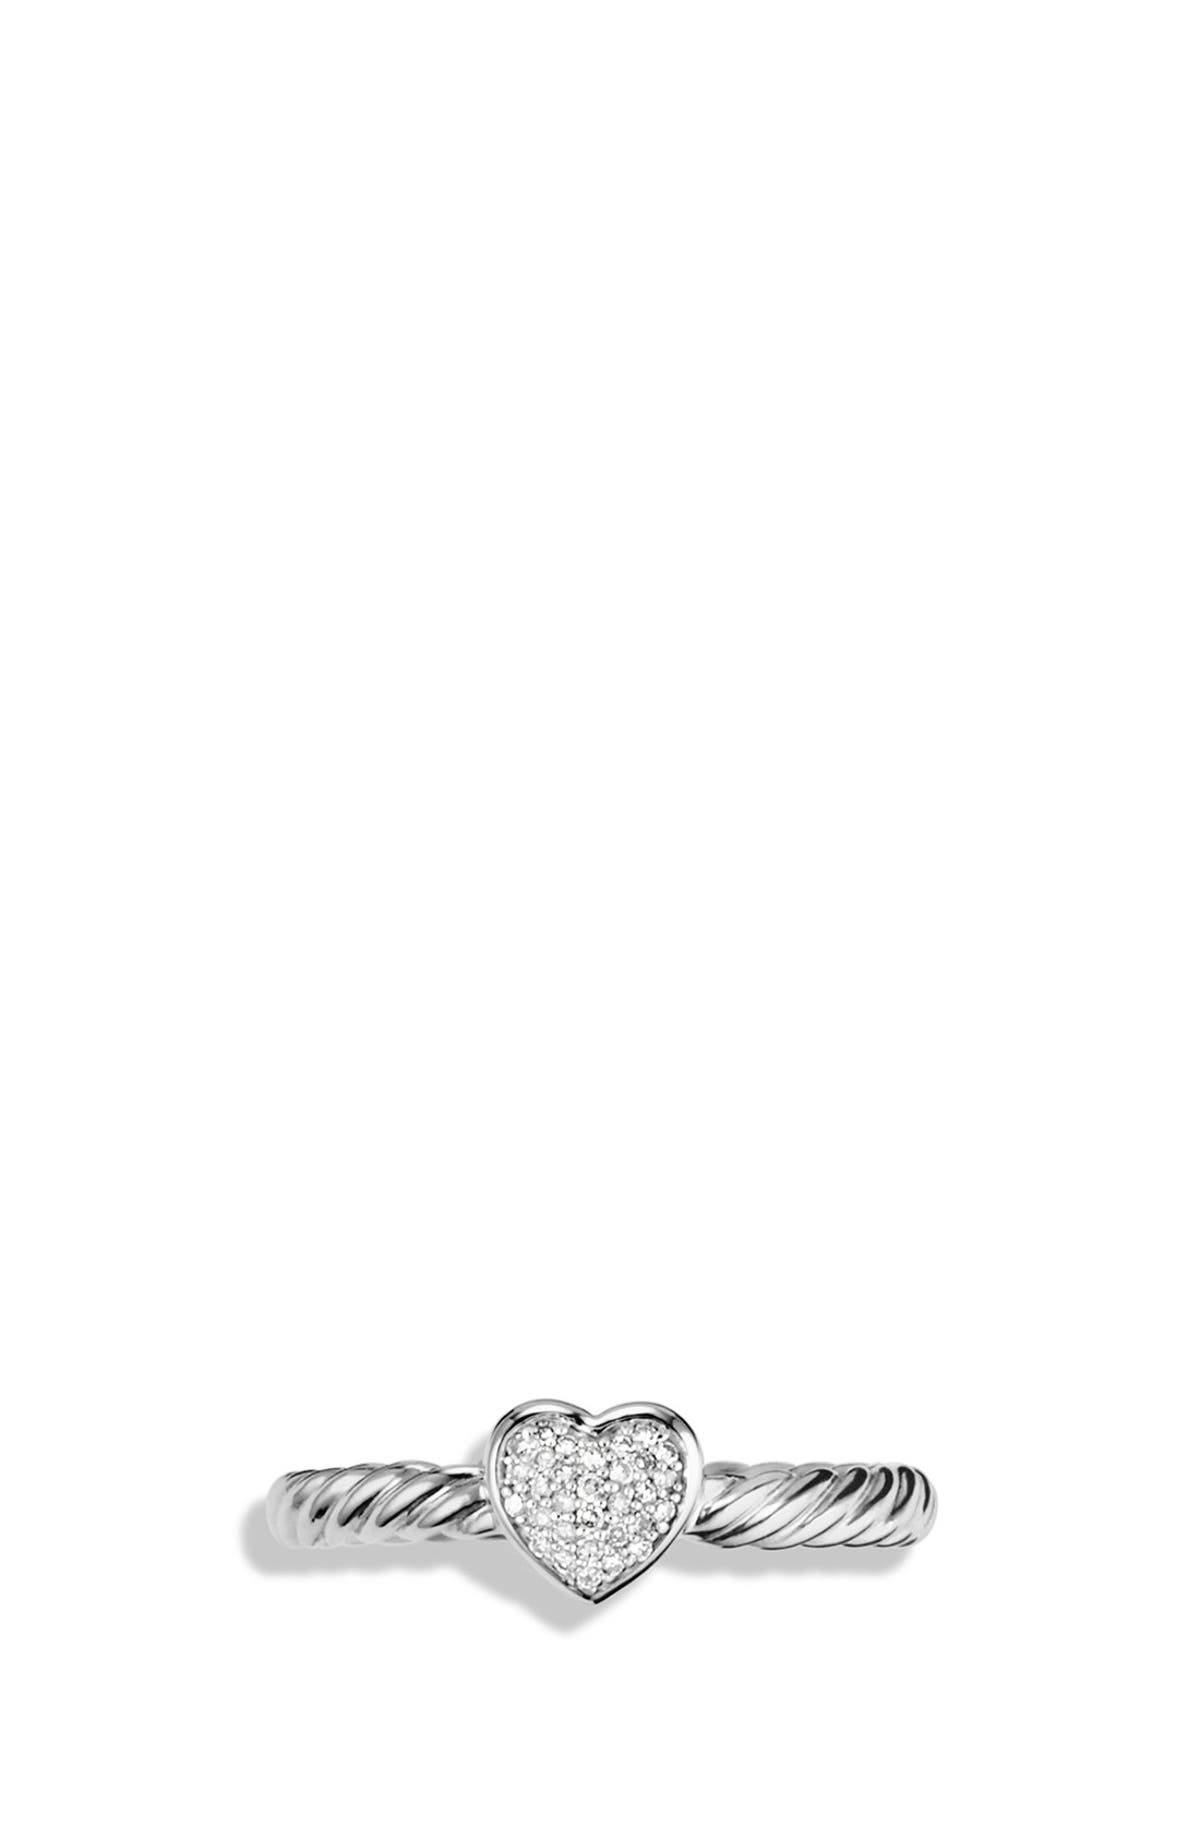 ebdbafd37edee1 David Yurman 'Cable Collectibles' Heart Ring with Diamonds | Nordstrom